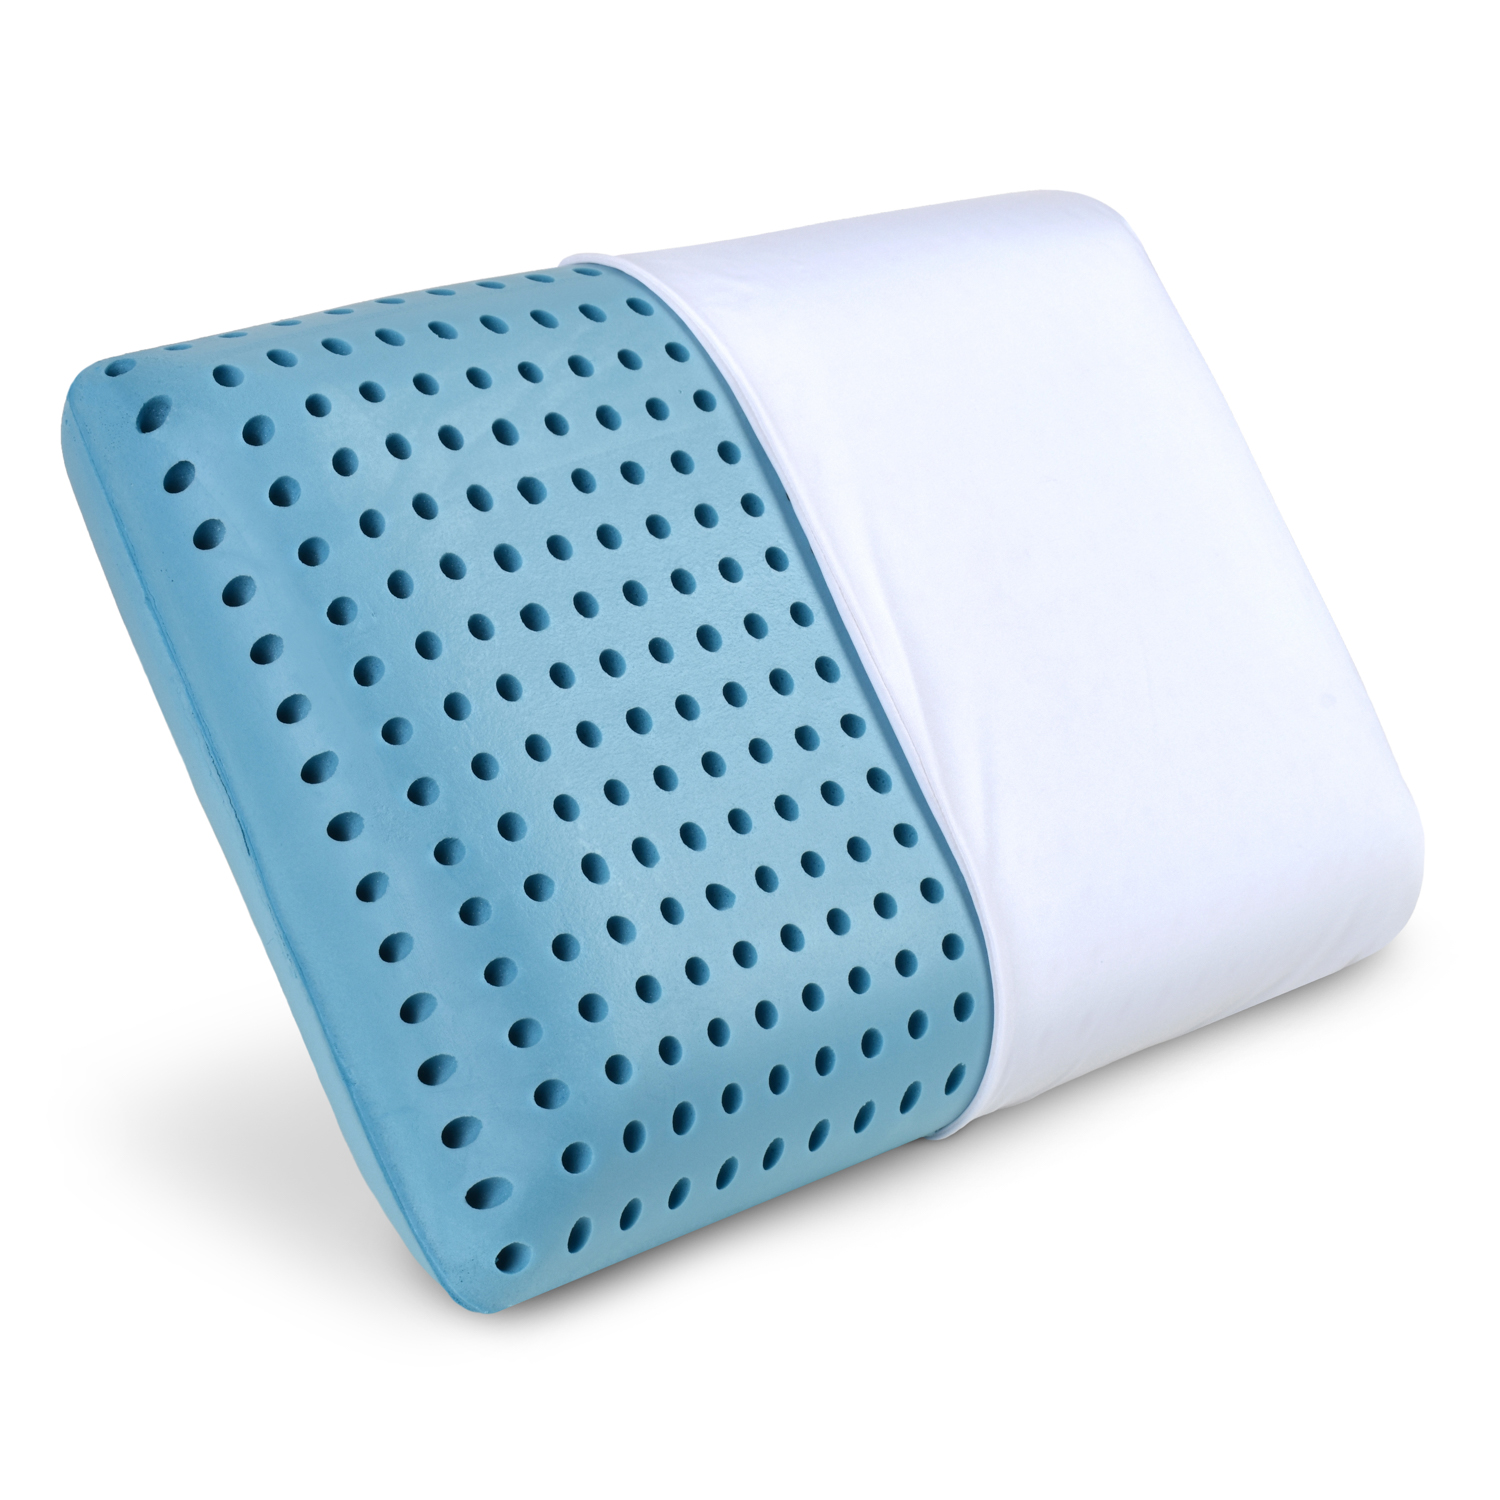 LunaBLUE Memory Foam Pillow Ventilated Hole-Punch Memory Foam Bed Pillow Infused with Cooling Gel incl. Removable Pillow Case